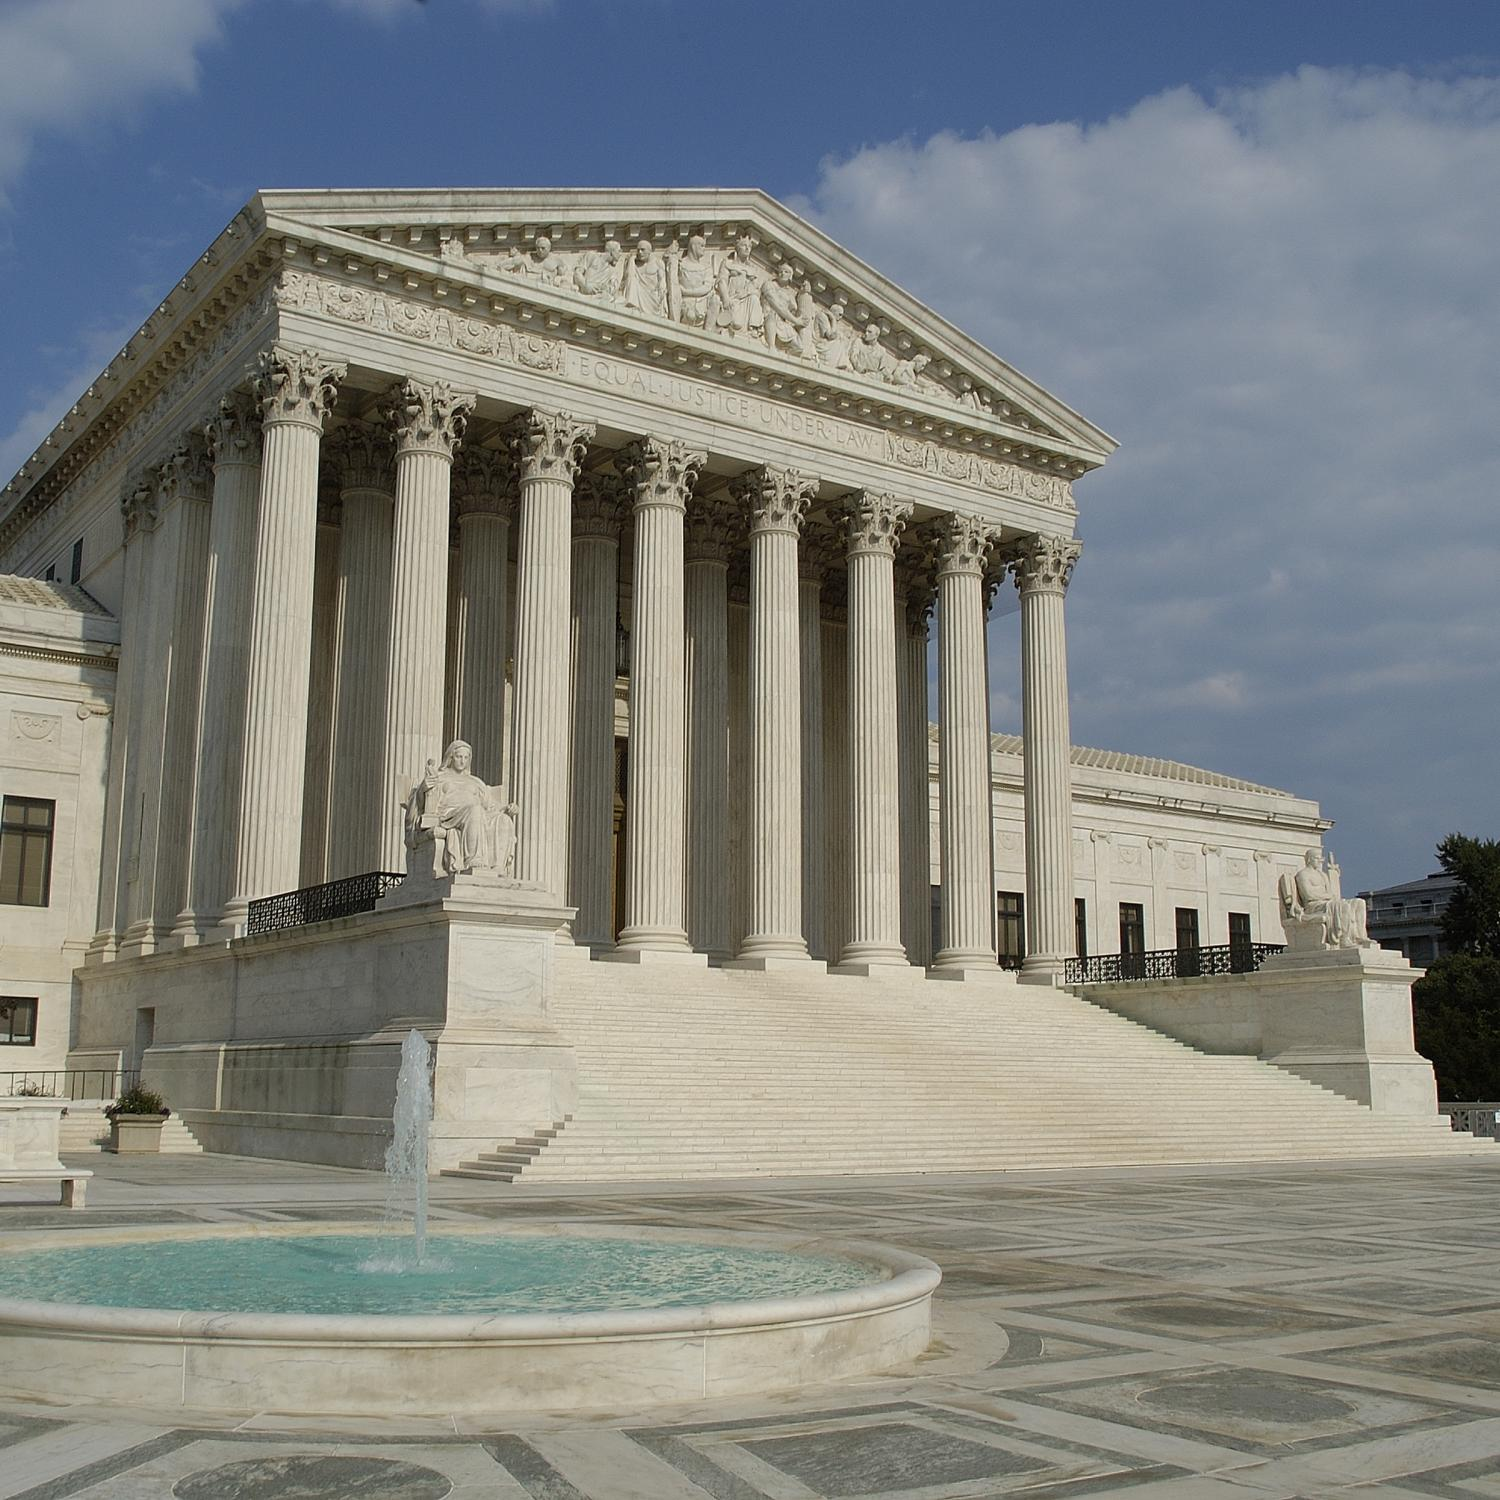 If Democrats Sweep 2020 Election, They Could Add Justices To U.S. Supreme Court